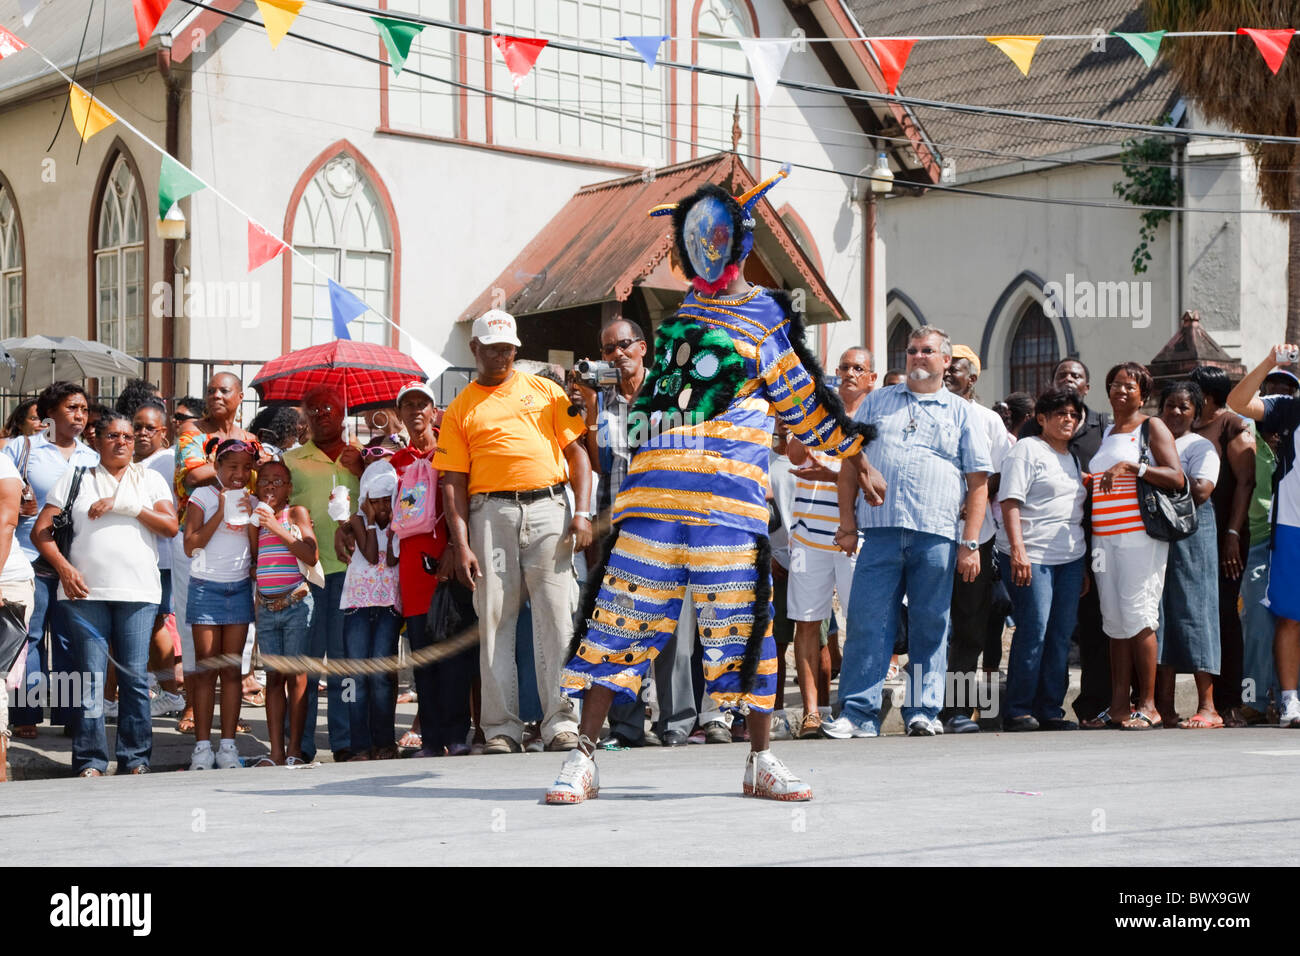 Junior traditional Mas parade - jab jab with whip performs for the crowd - Stock Image